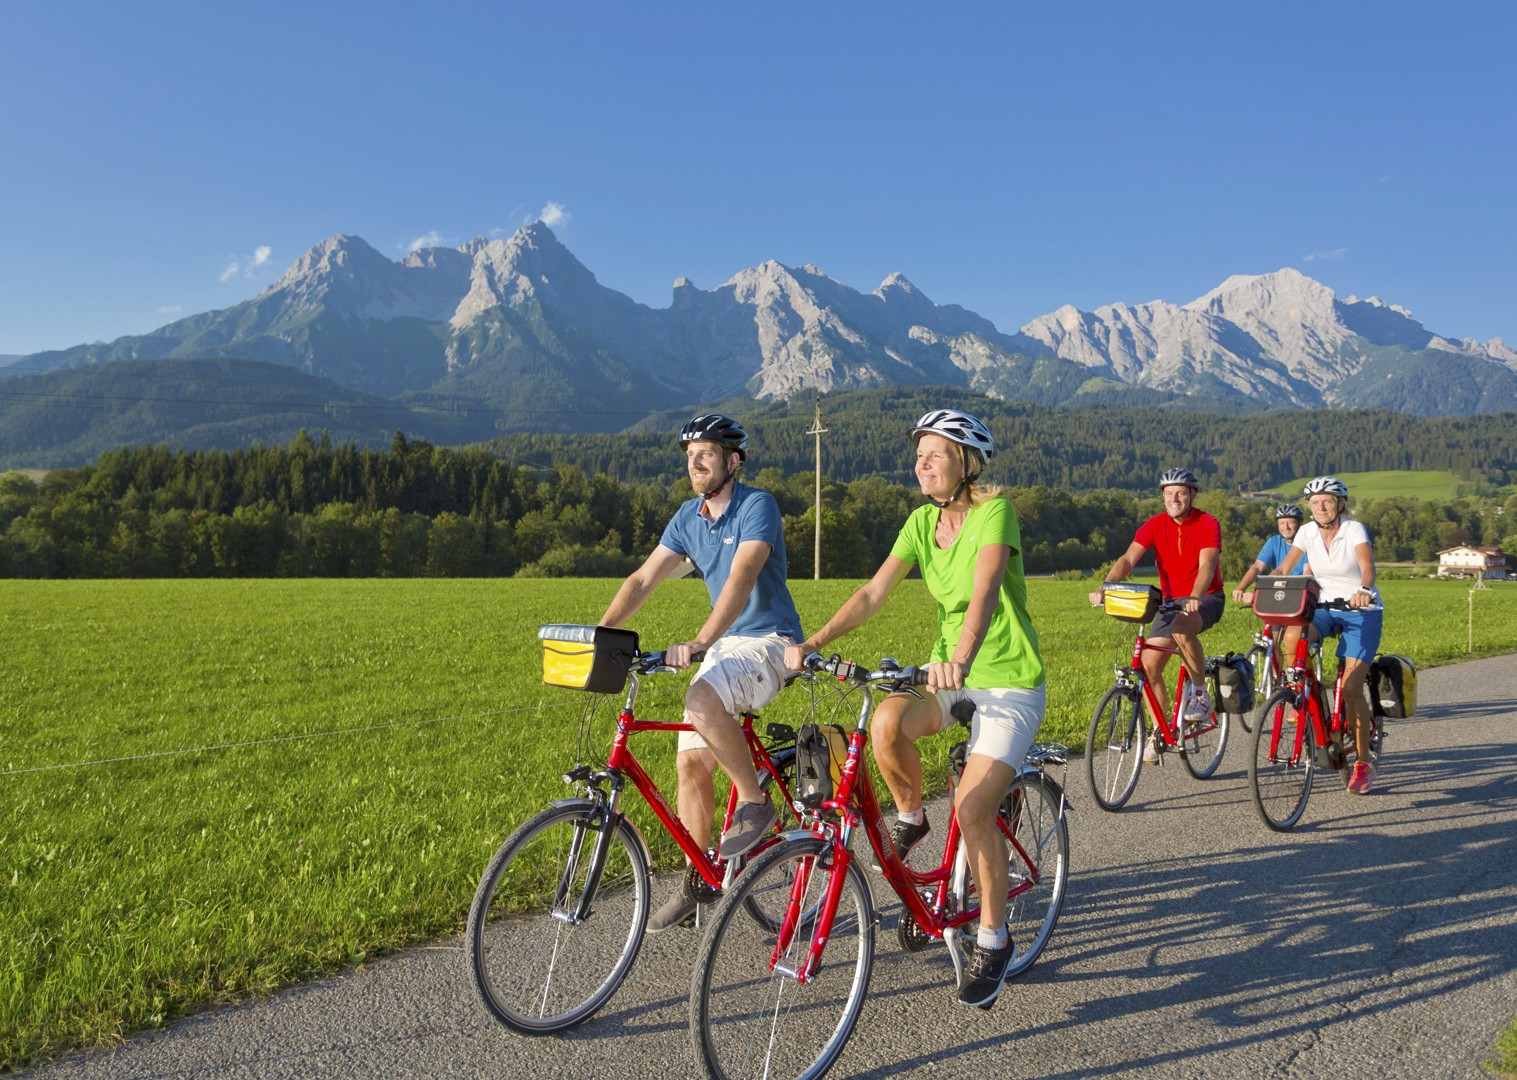 austria-panoramic-mountain-views-leisure-bike-holiday.jpg - Austria - Tauern Valleys - Self-Guided Leisure Cycling Holiday - Leisure Cycling